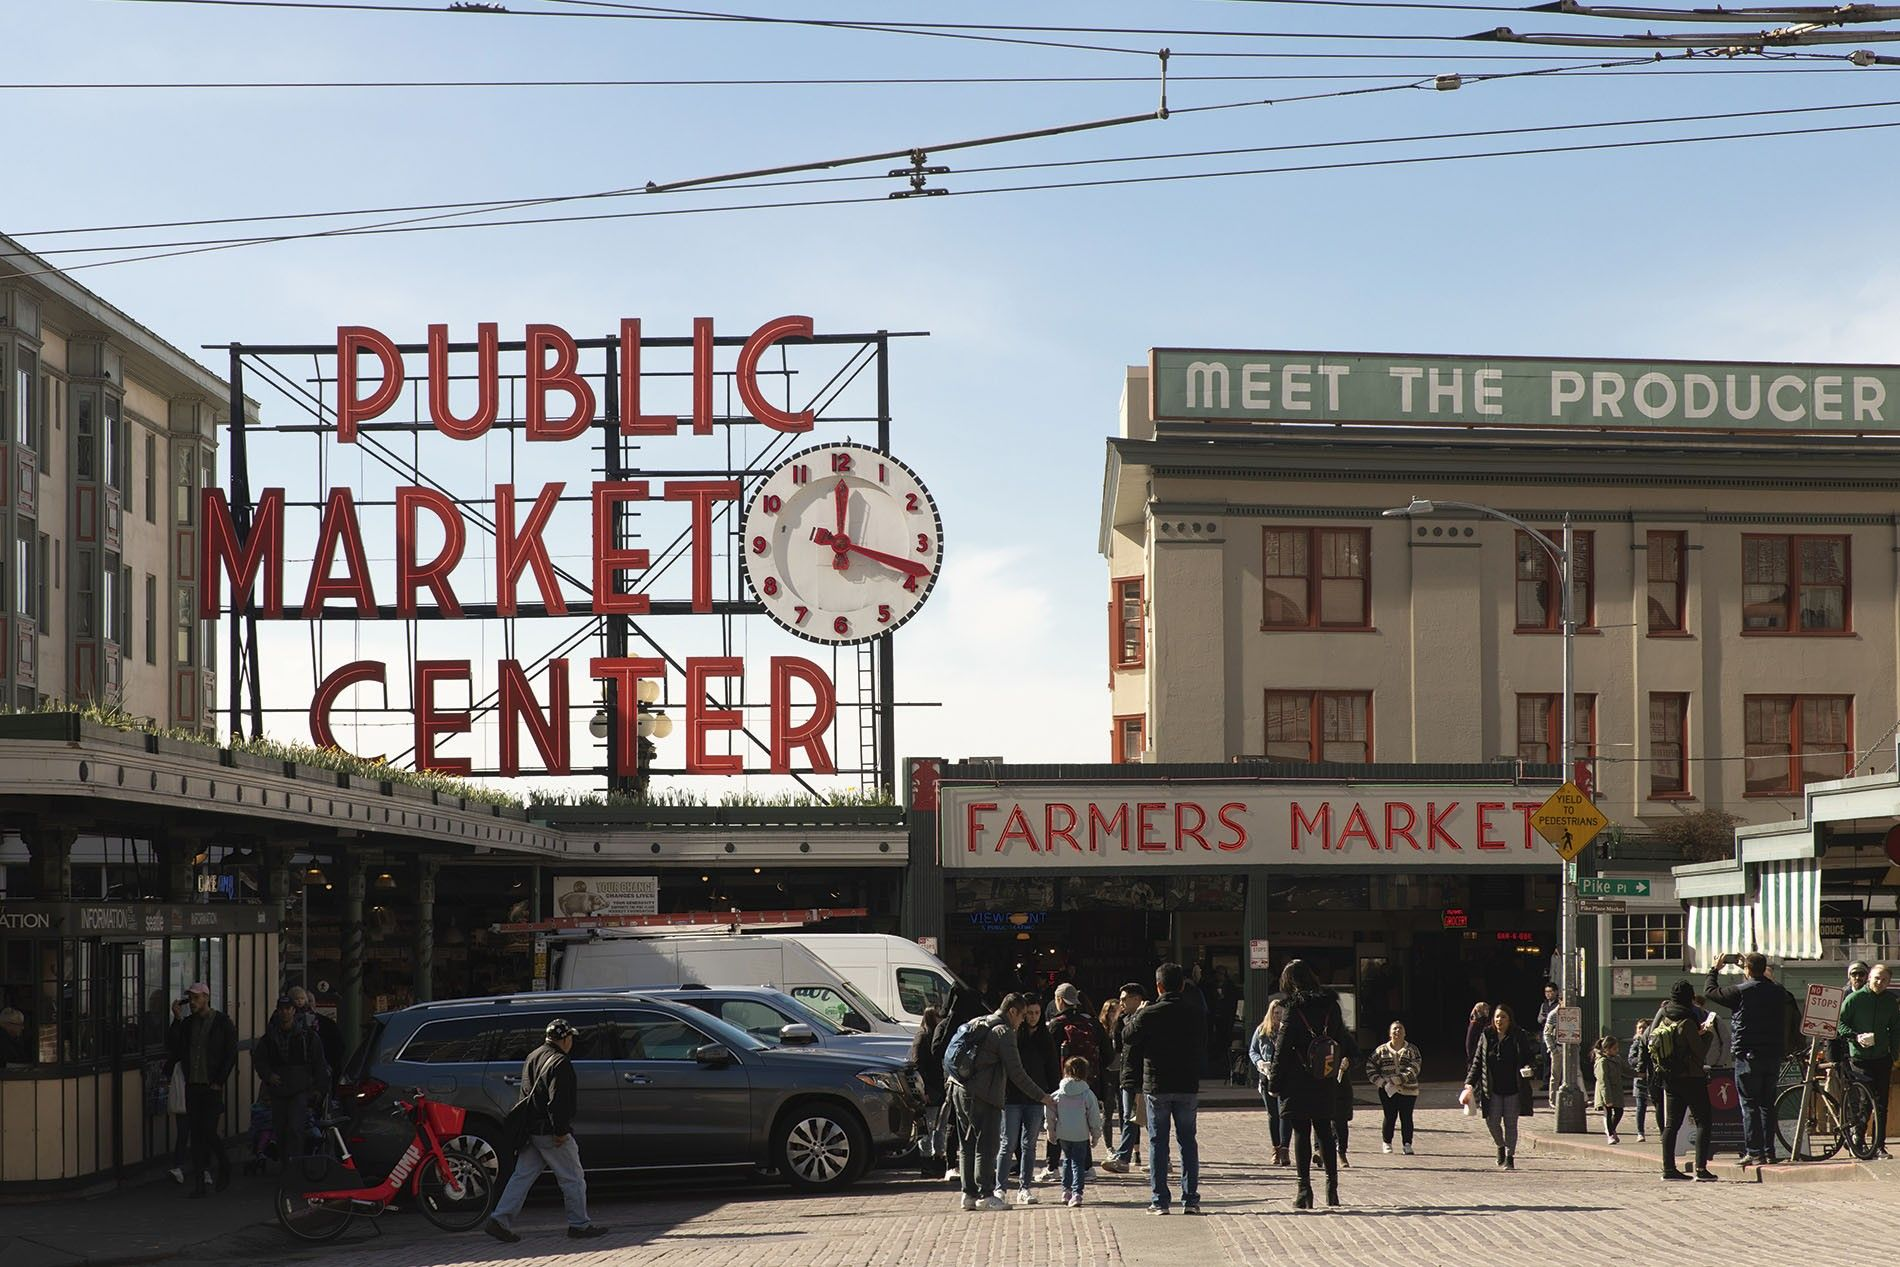 City guide to Seattle